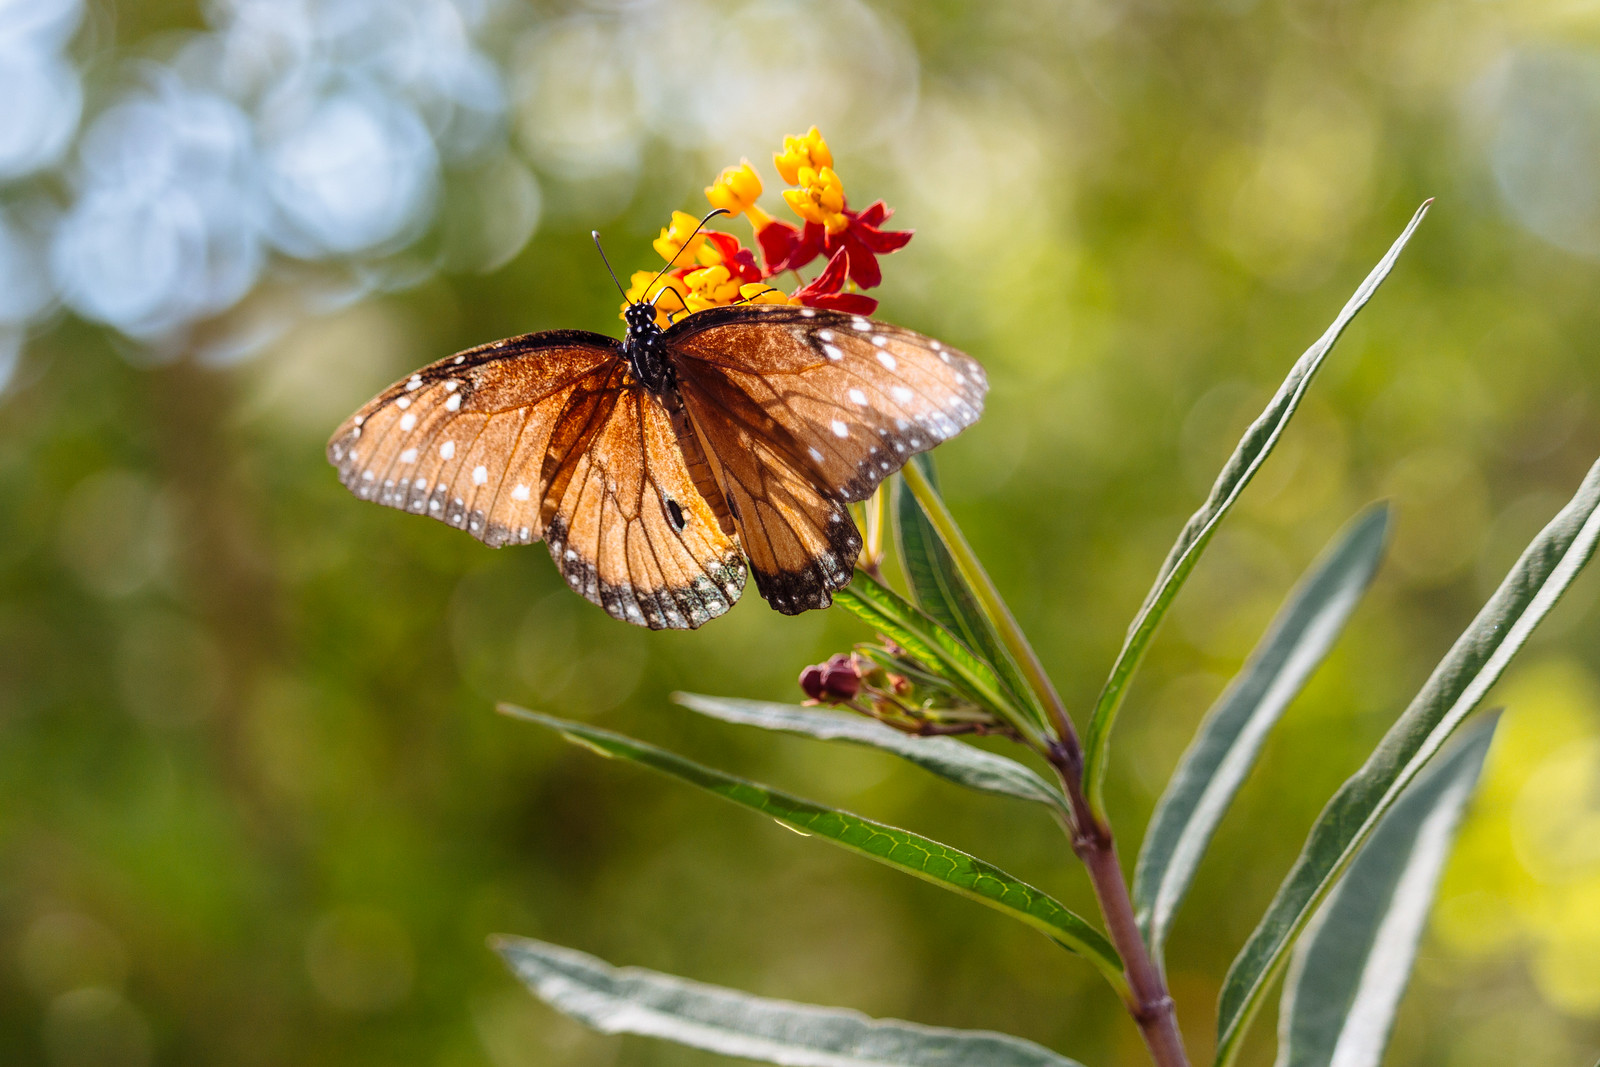 A butterfly with orange wings drinks nectar from a yellow and red flower